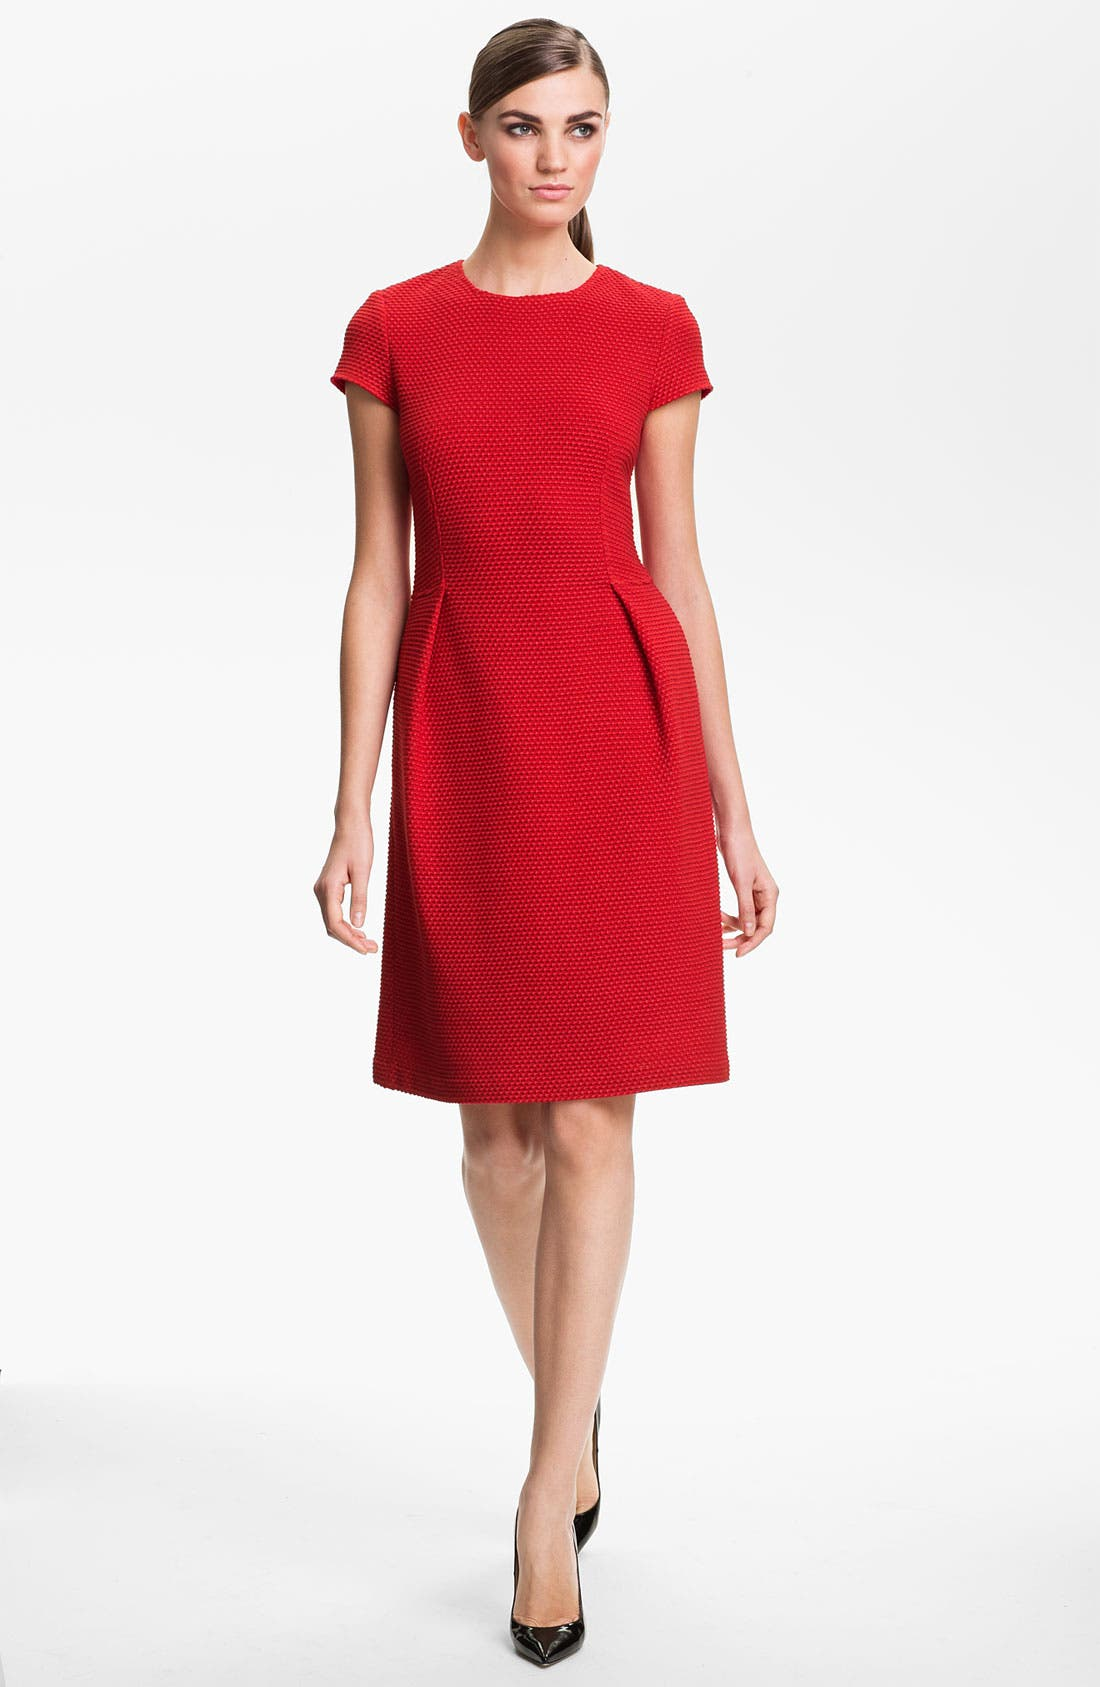 Main Image - St. John Collection Jewel Neck Punto Riso Dress